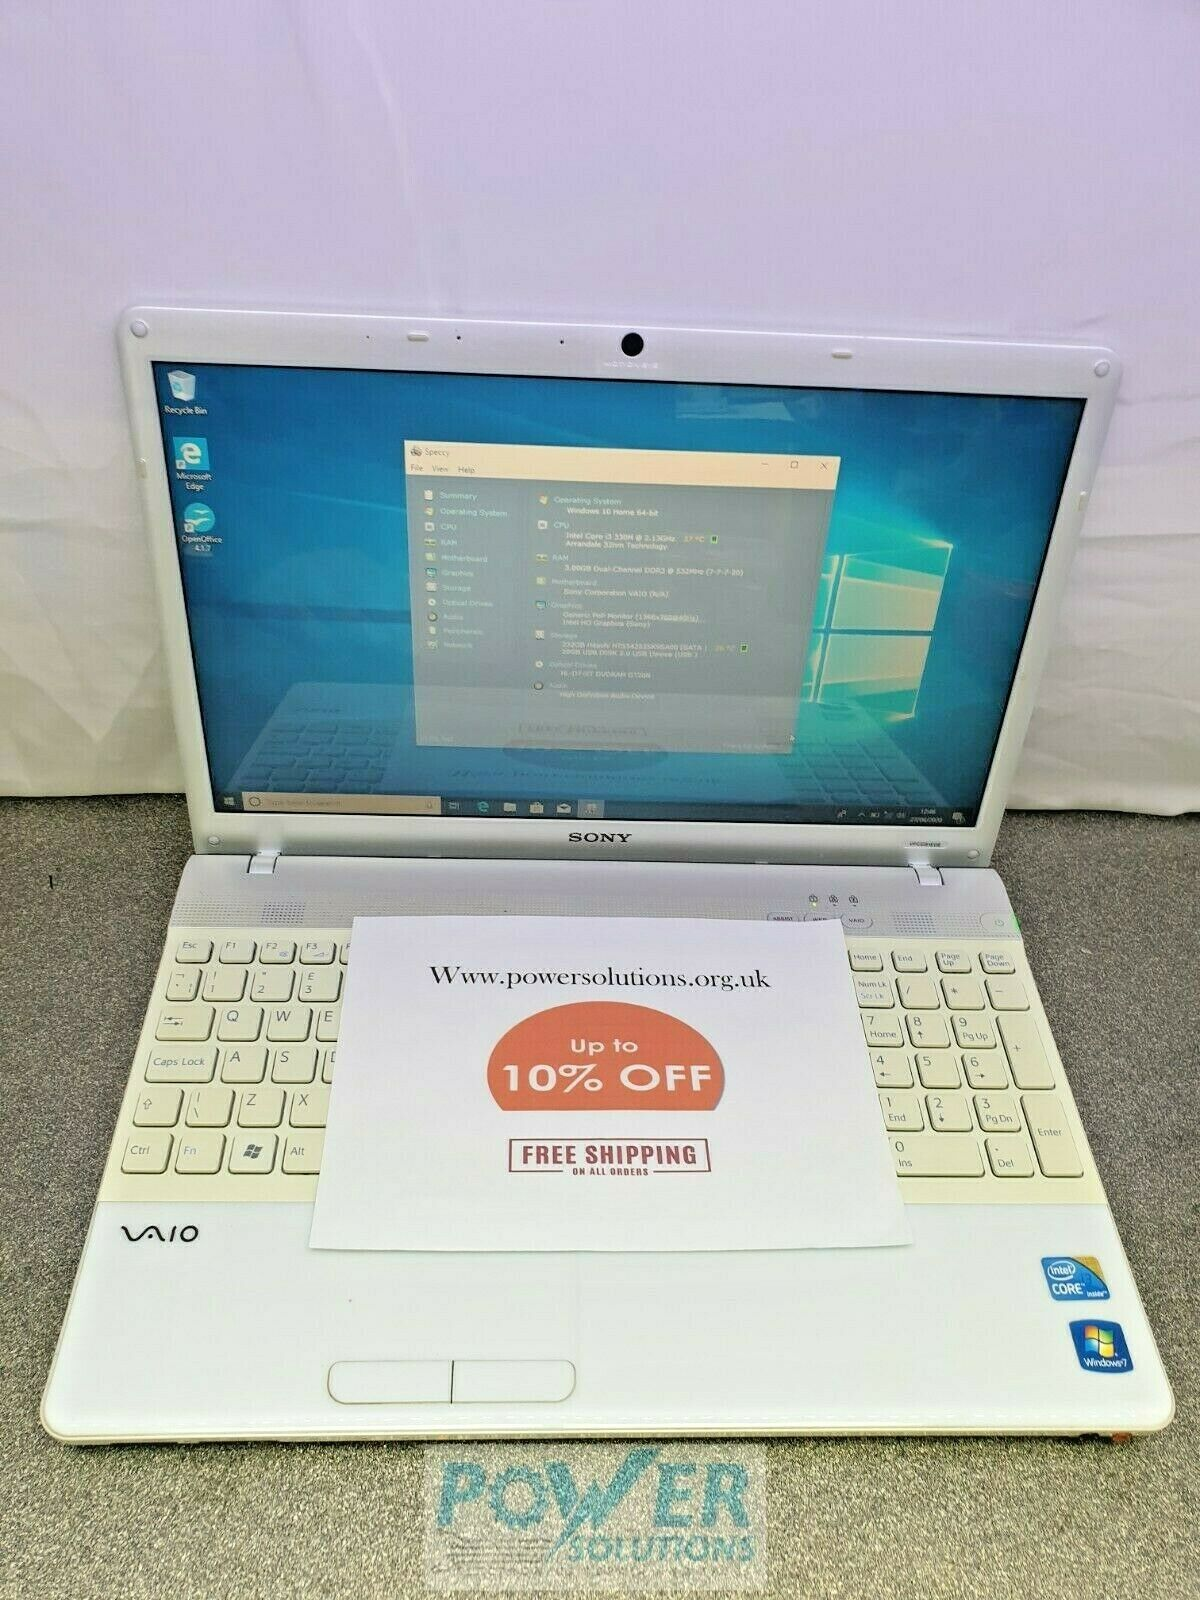 SONY VAIO PCG 71312M WIN 10 3GB 232GB i3 330M LAPTOP 133450005629